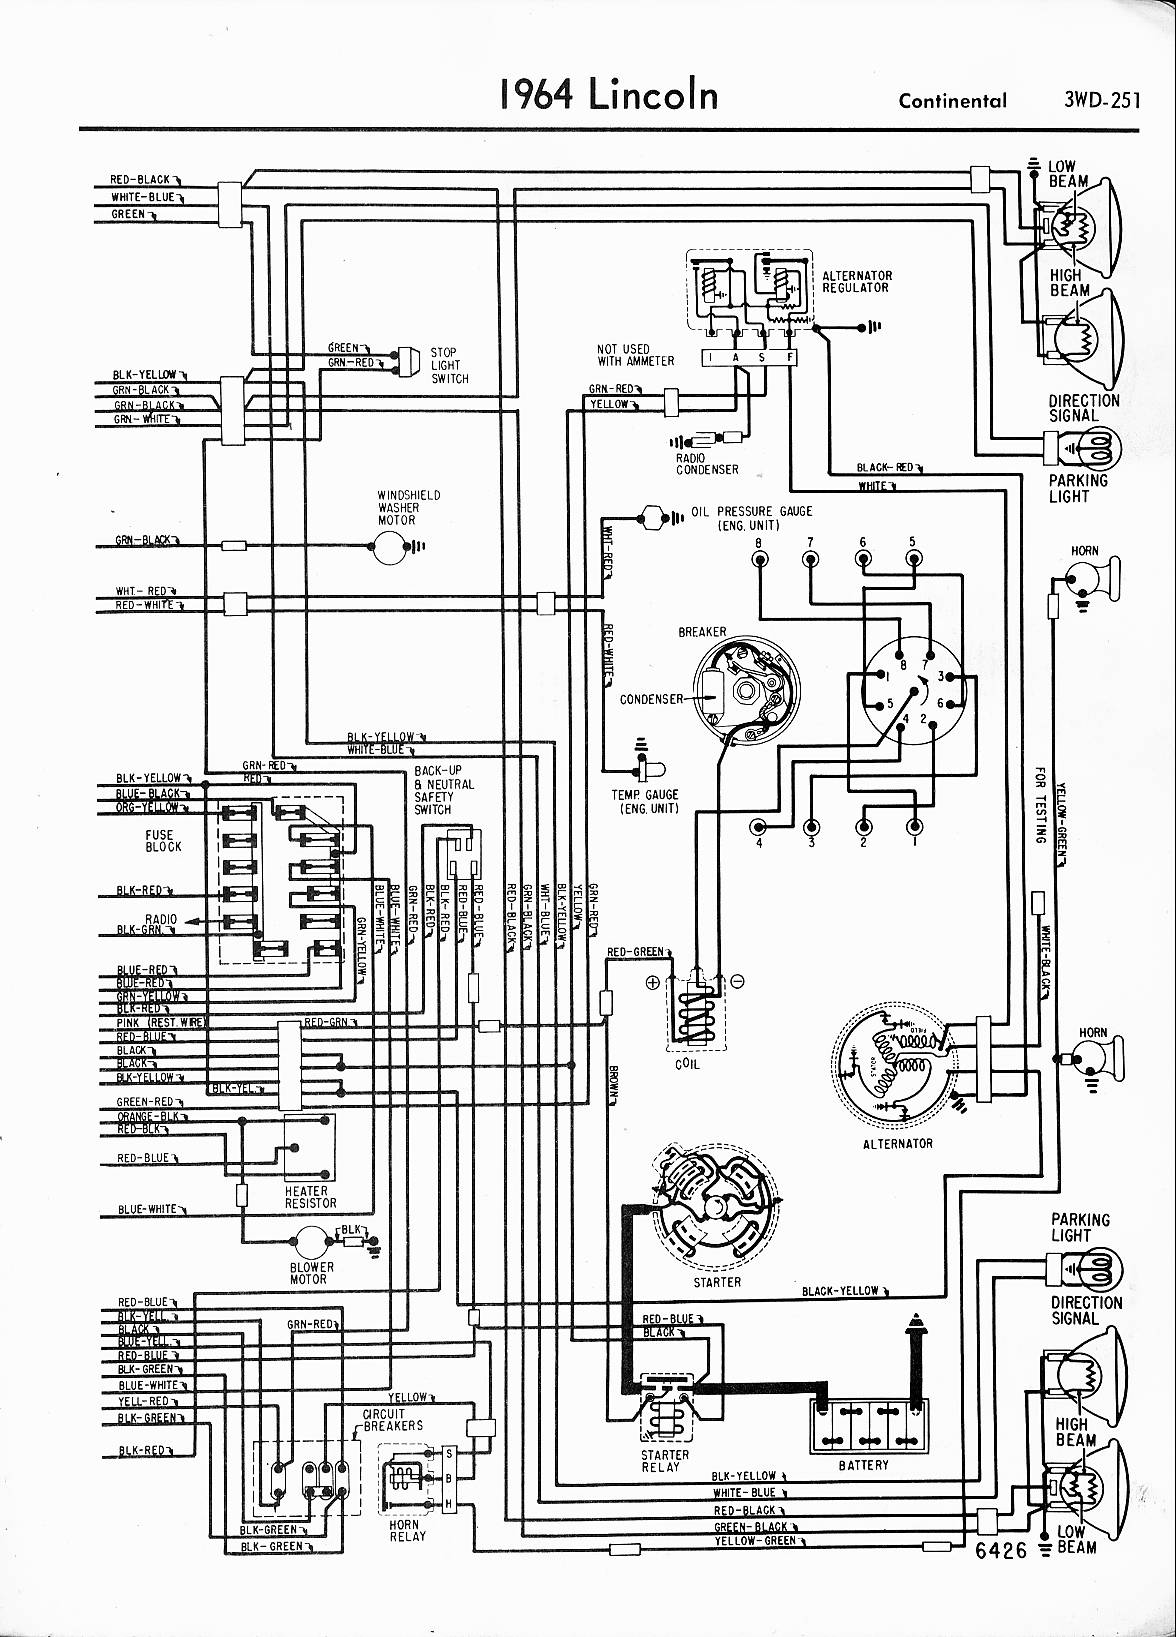 1964 lincoln vacuum wiring diagram anything wiring diagrams u2022 rh flowhq co engine wiring diagram 1968 buick skylark 1965 gto engine wiring diagram